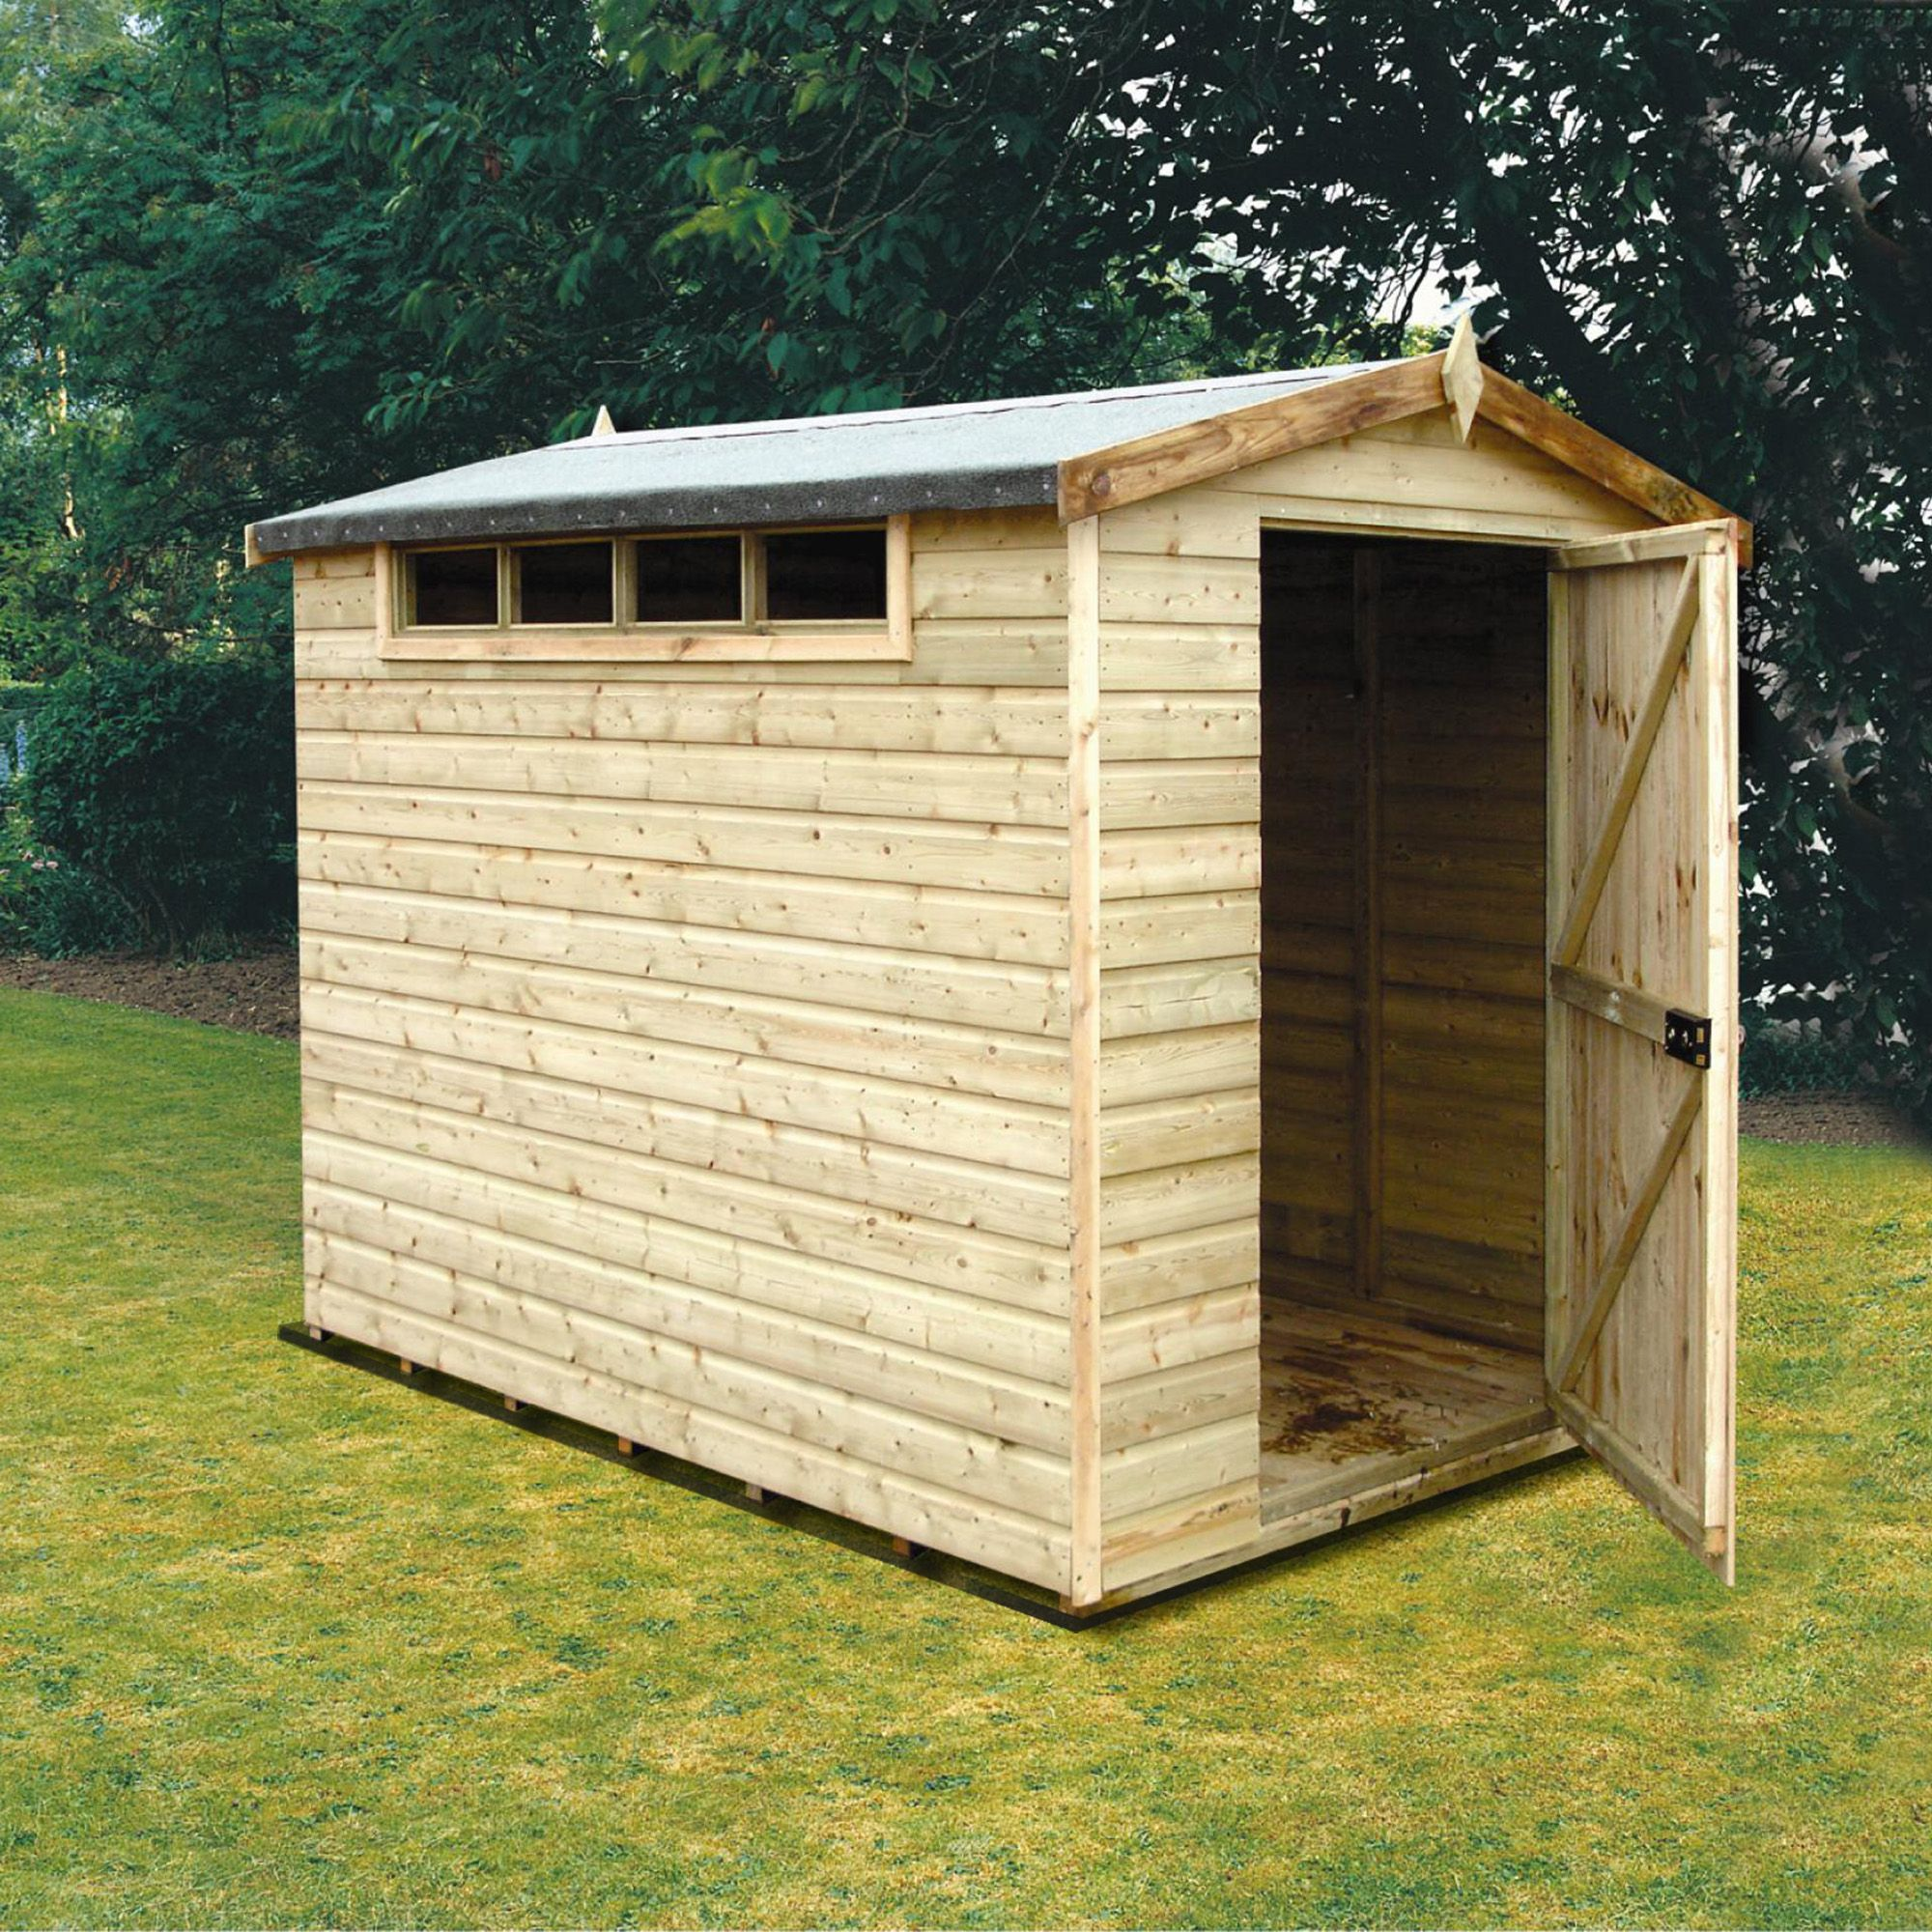 Wooden shed photo